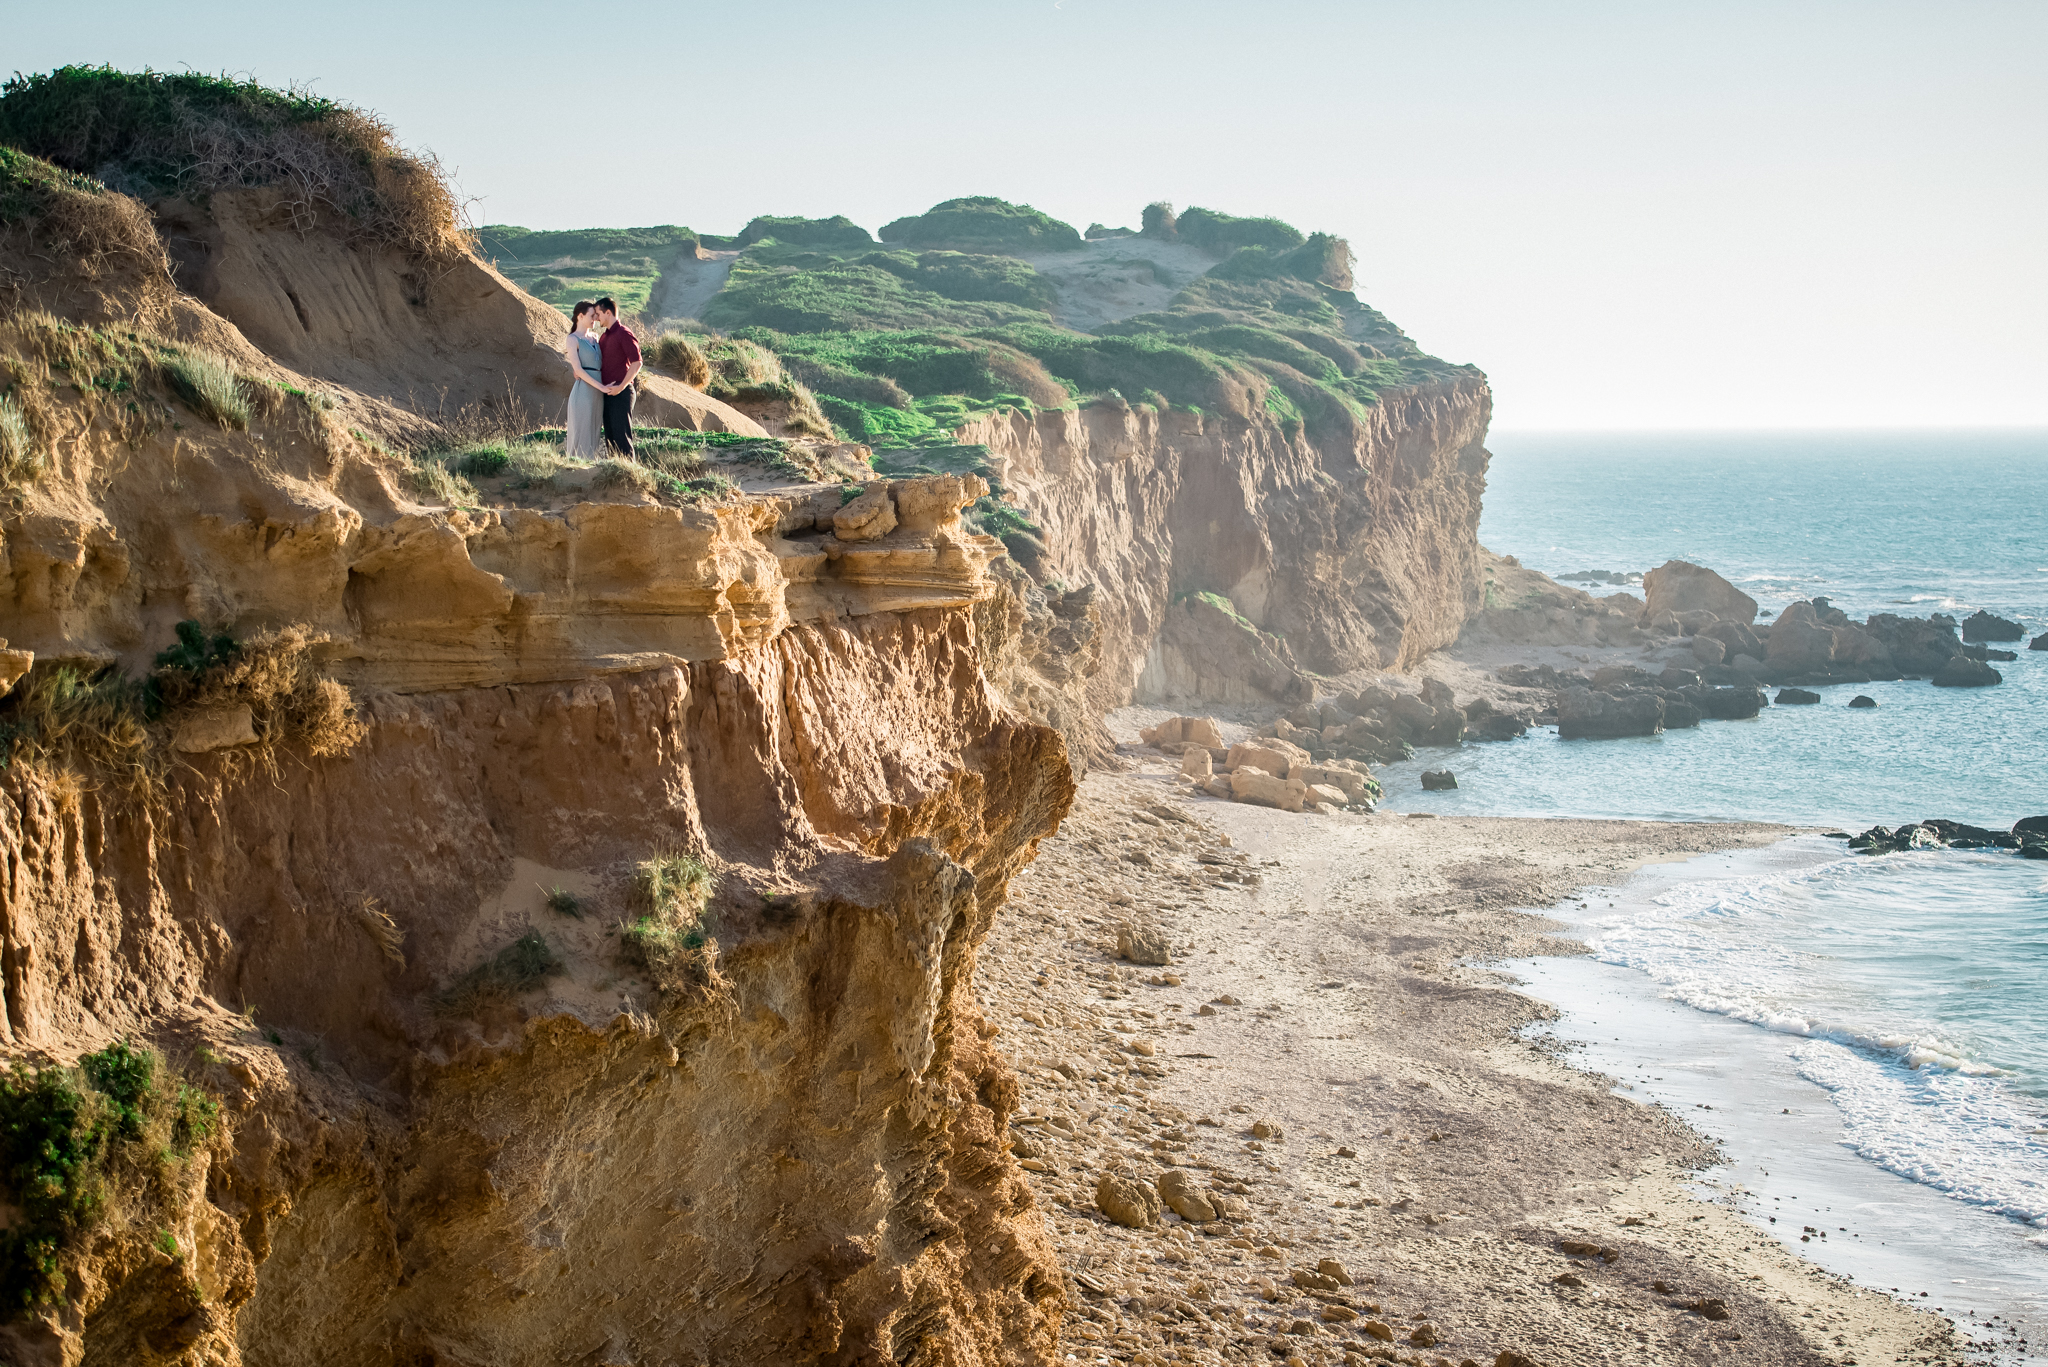 Cliffside-beach-engagement-session-hadera-israel-kate-giryes-photography-9137.jpg